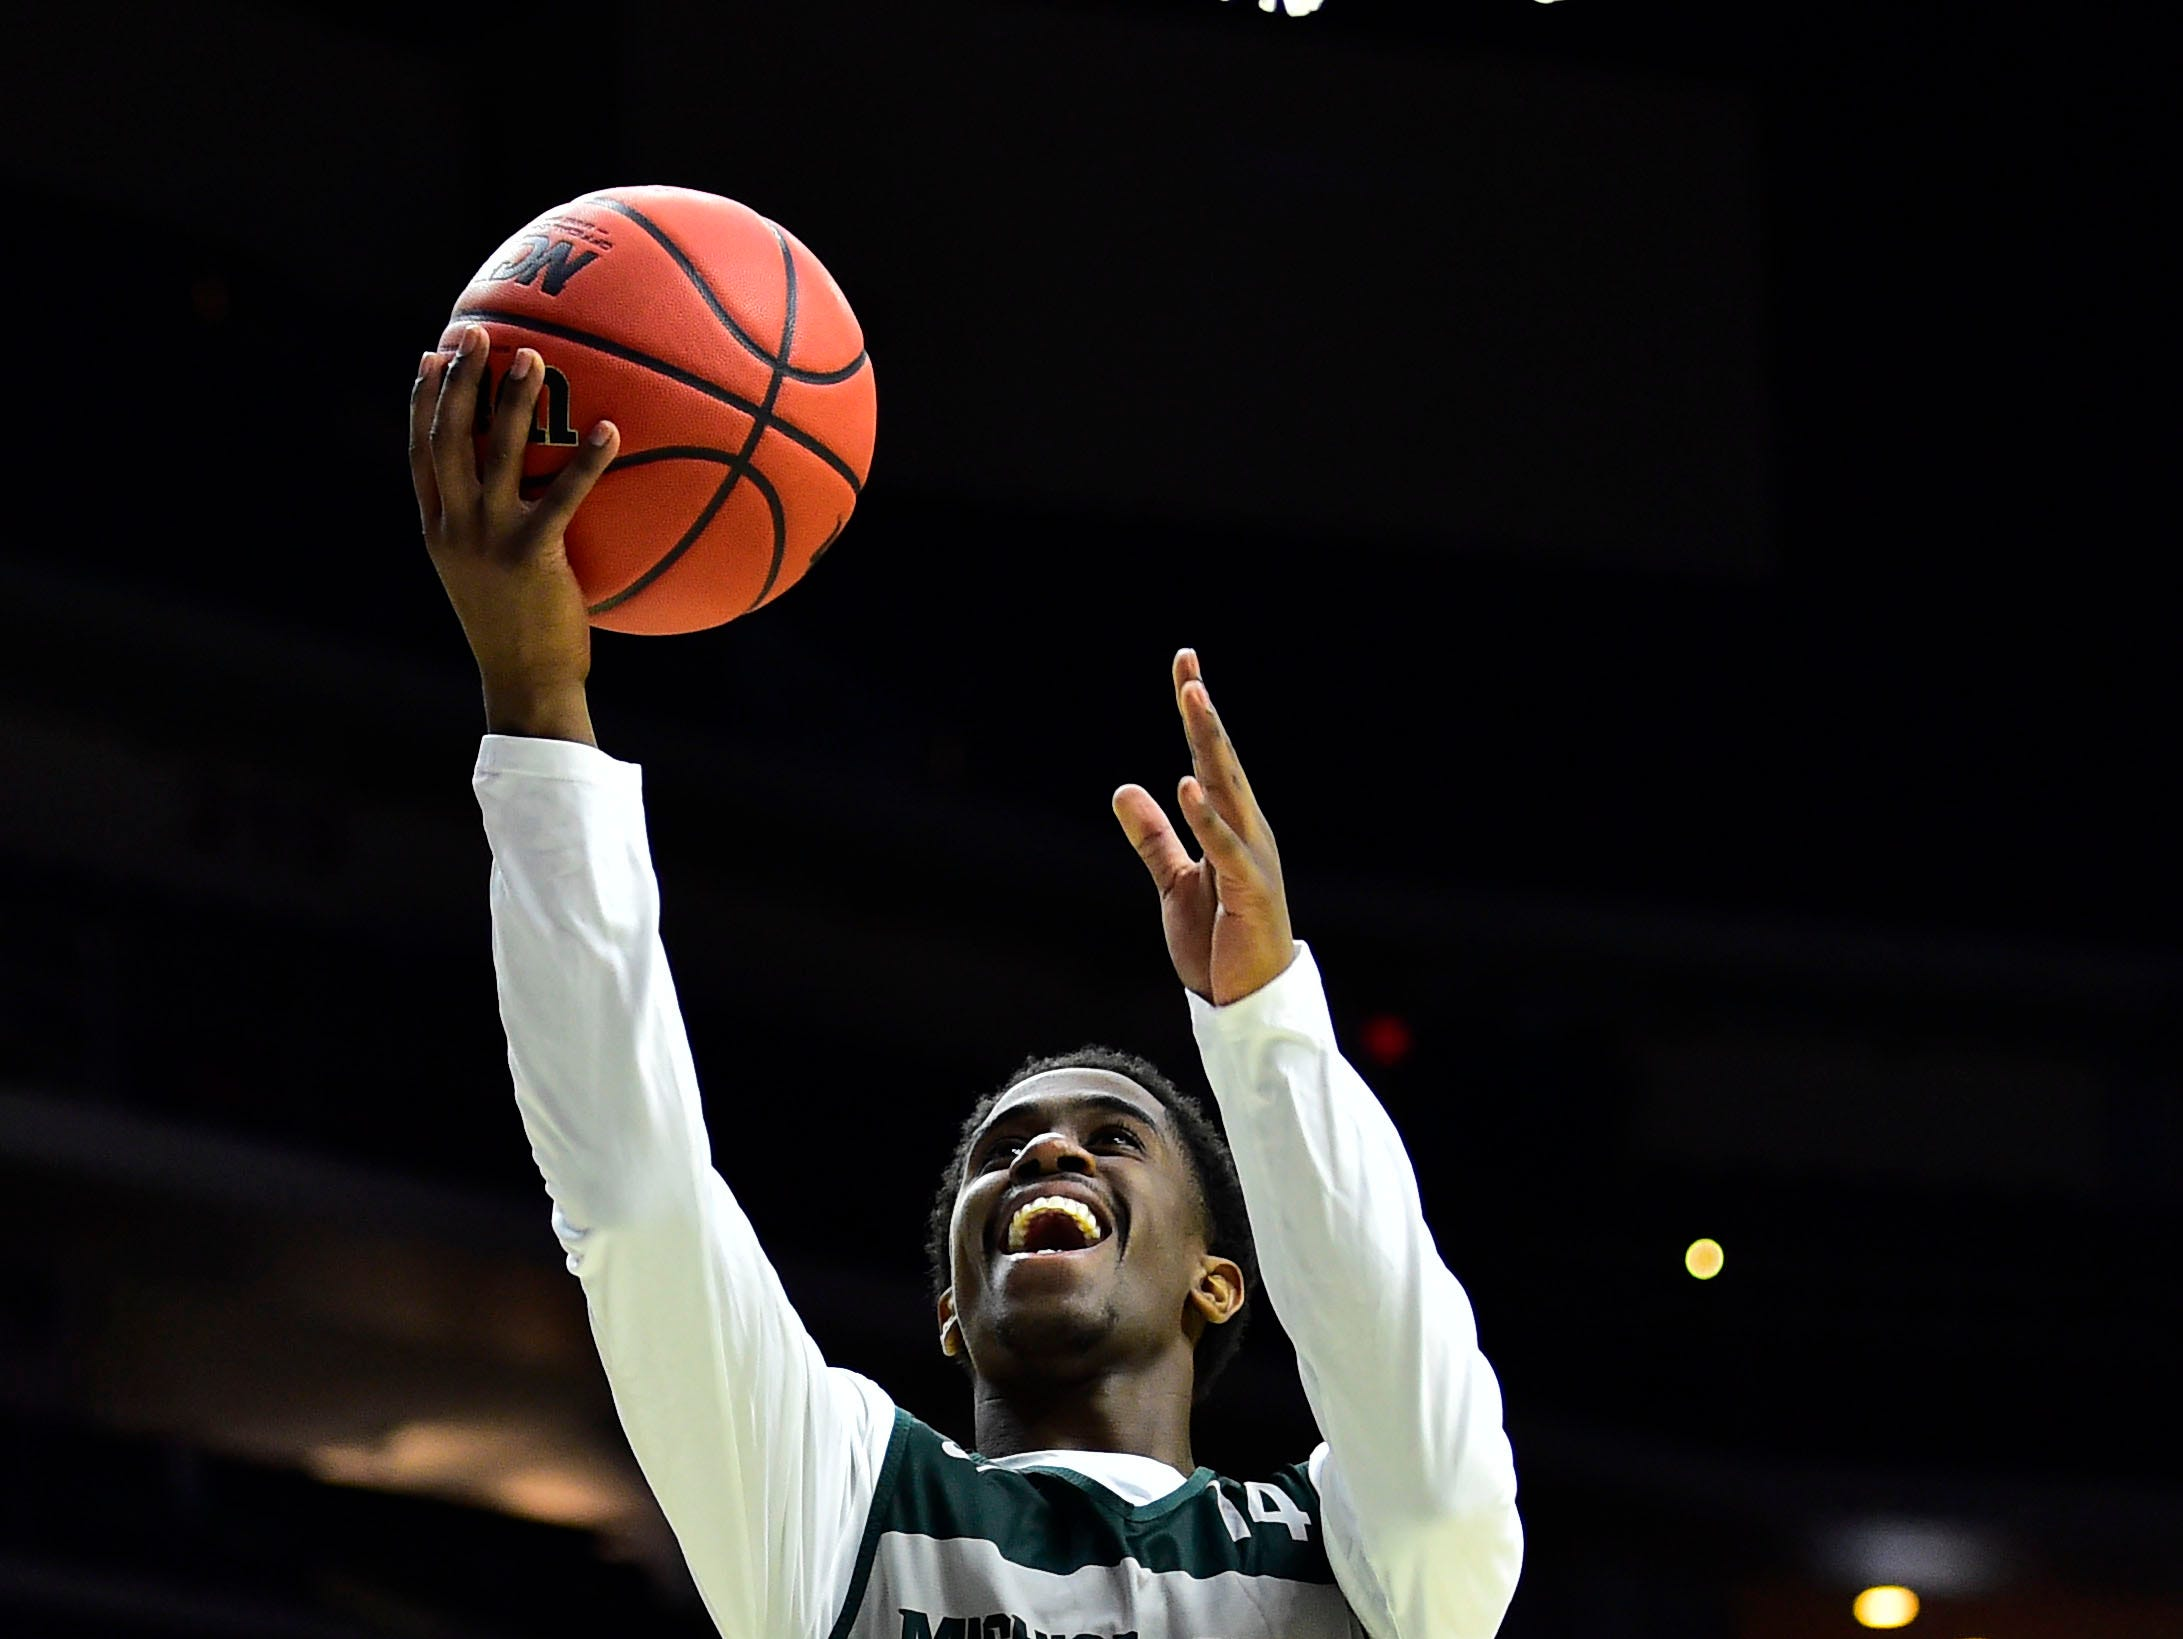 Mar 20, 2019; Des Moines, IA, USA; Michigan State Spartans guard Brock Washington (14) shoots the ball during practice before the first round of the 2019 NCAA Tournament at Wells Fargo Arena. Mandatory Credit: Jeffery Becker-USA TODAY Sports